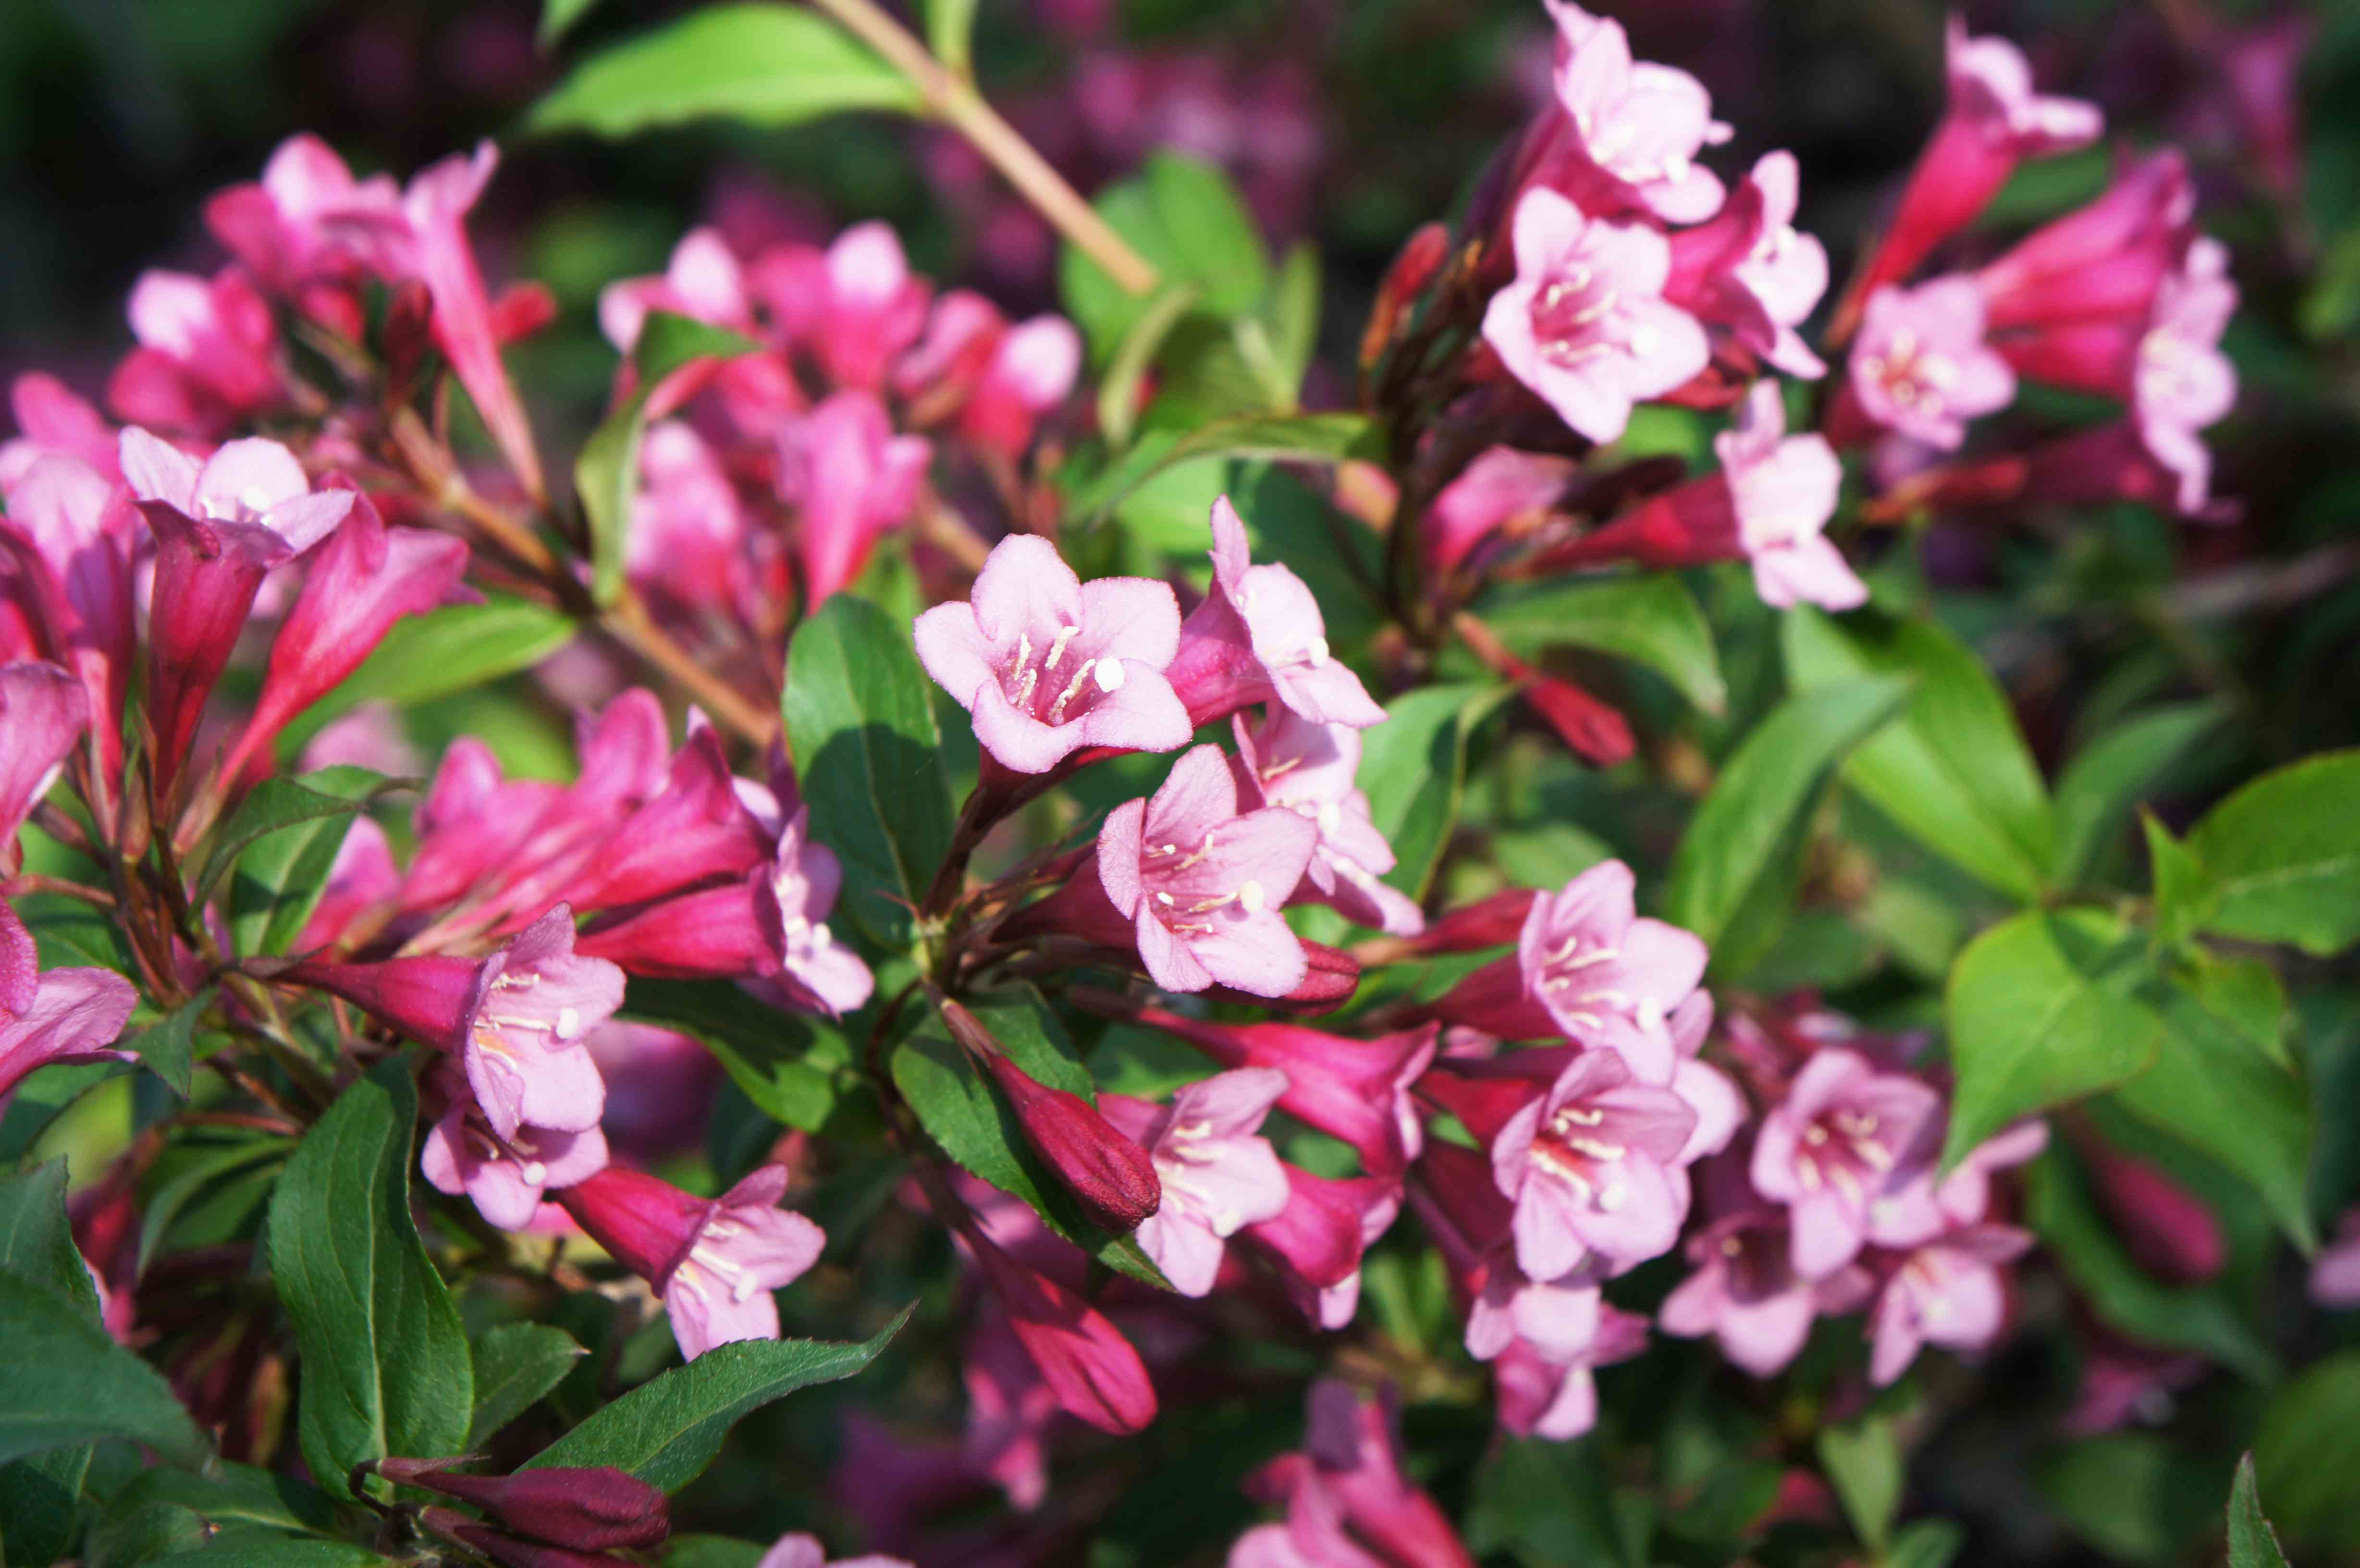 Weigela florida many flowers close up with green